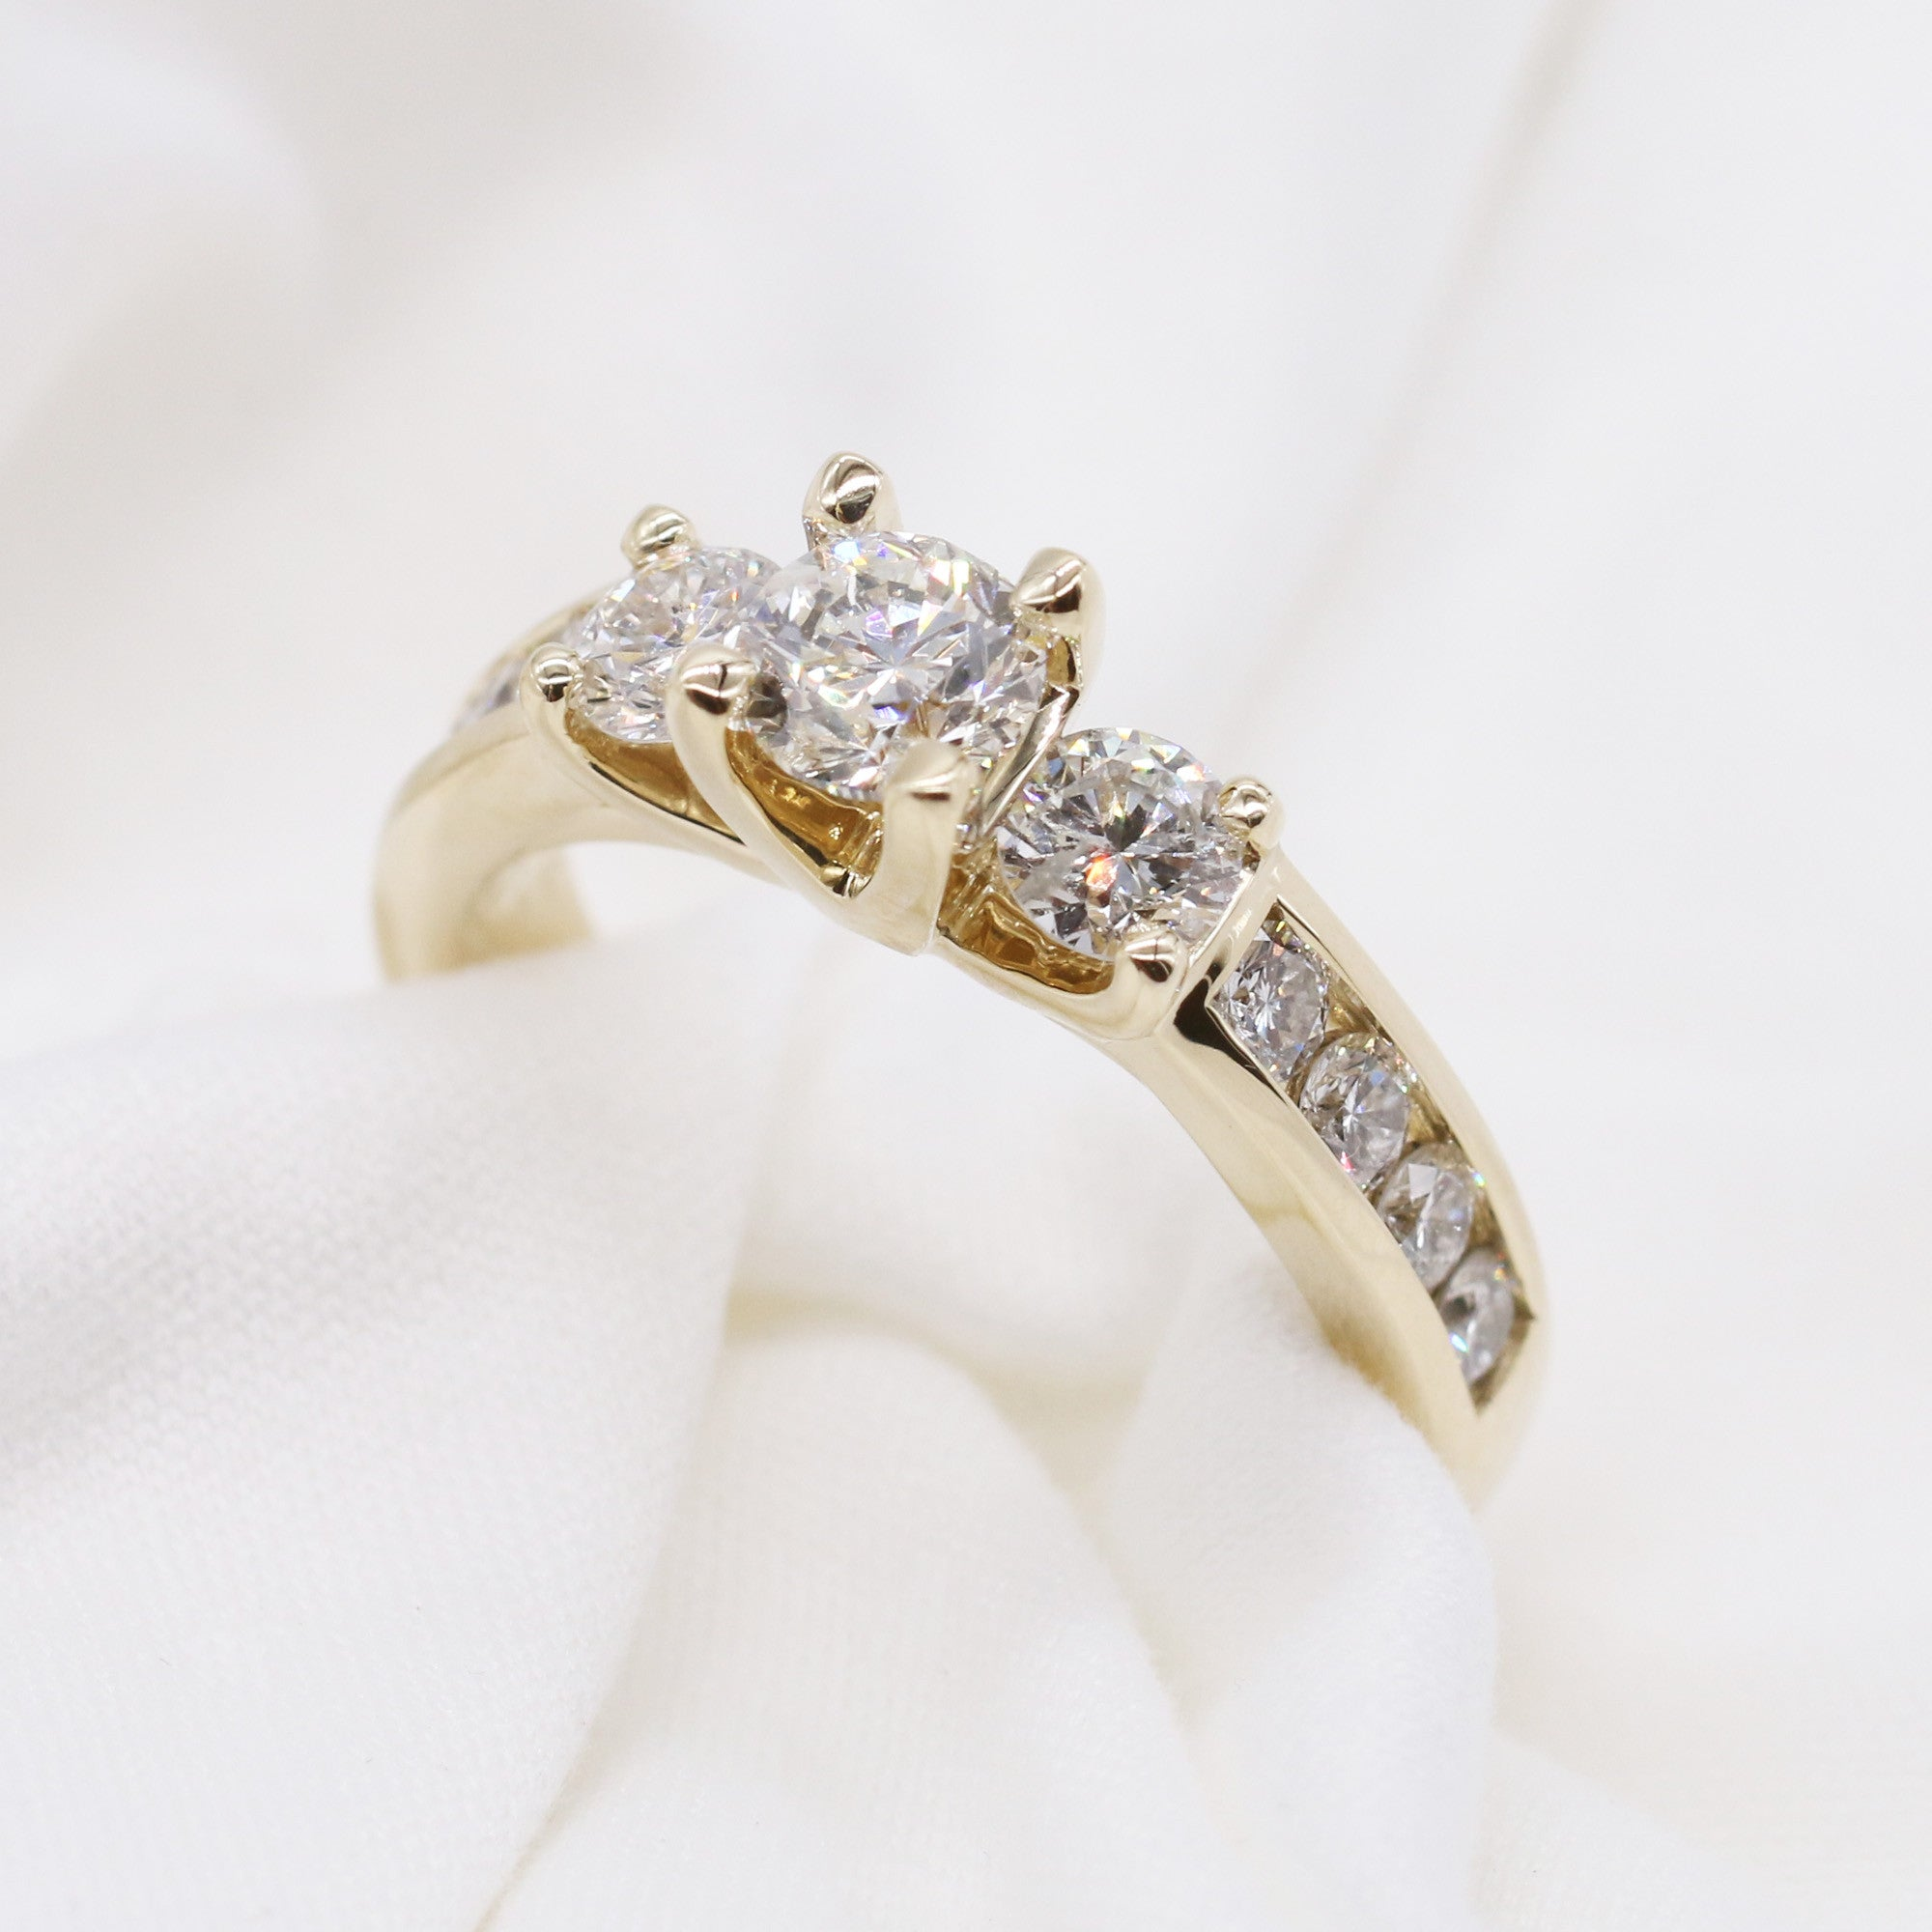 Custom 3 Stone Engagement Ring with Diamond Shank